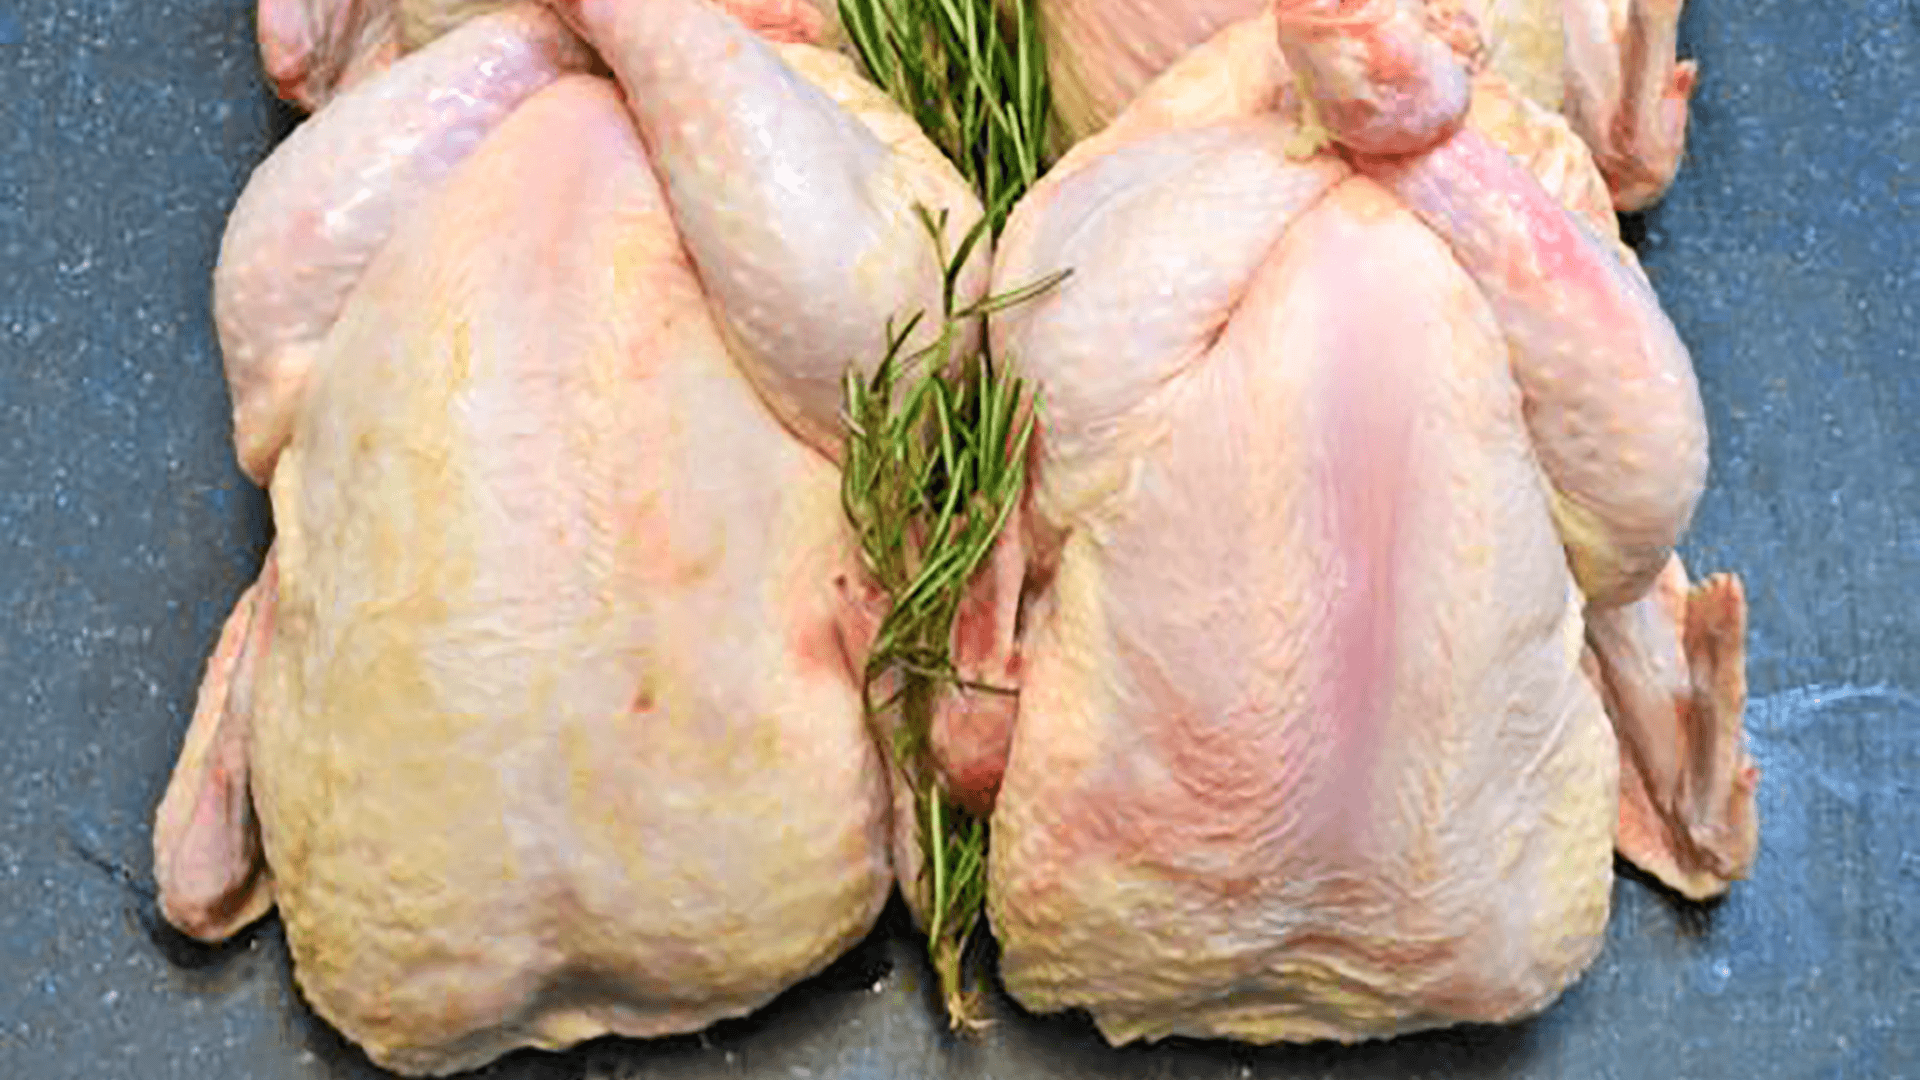 Chicken Recipes - Raw Whole Chickens